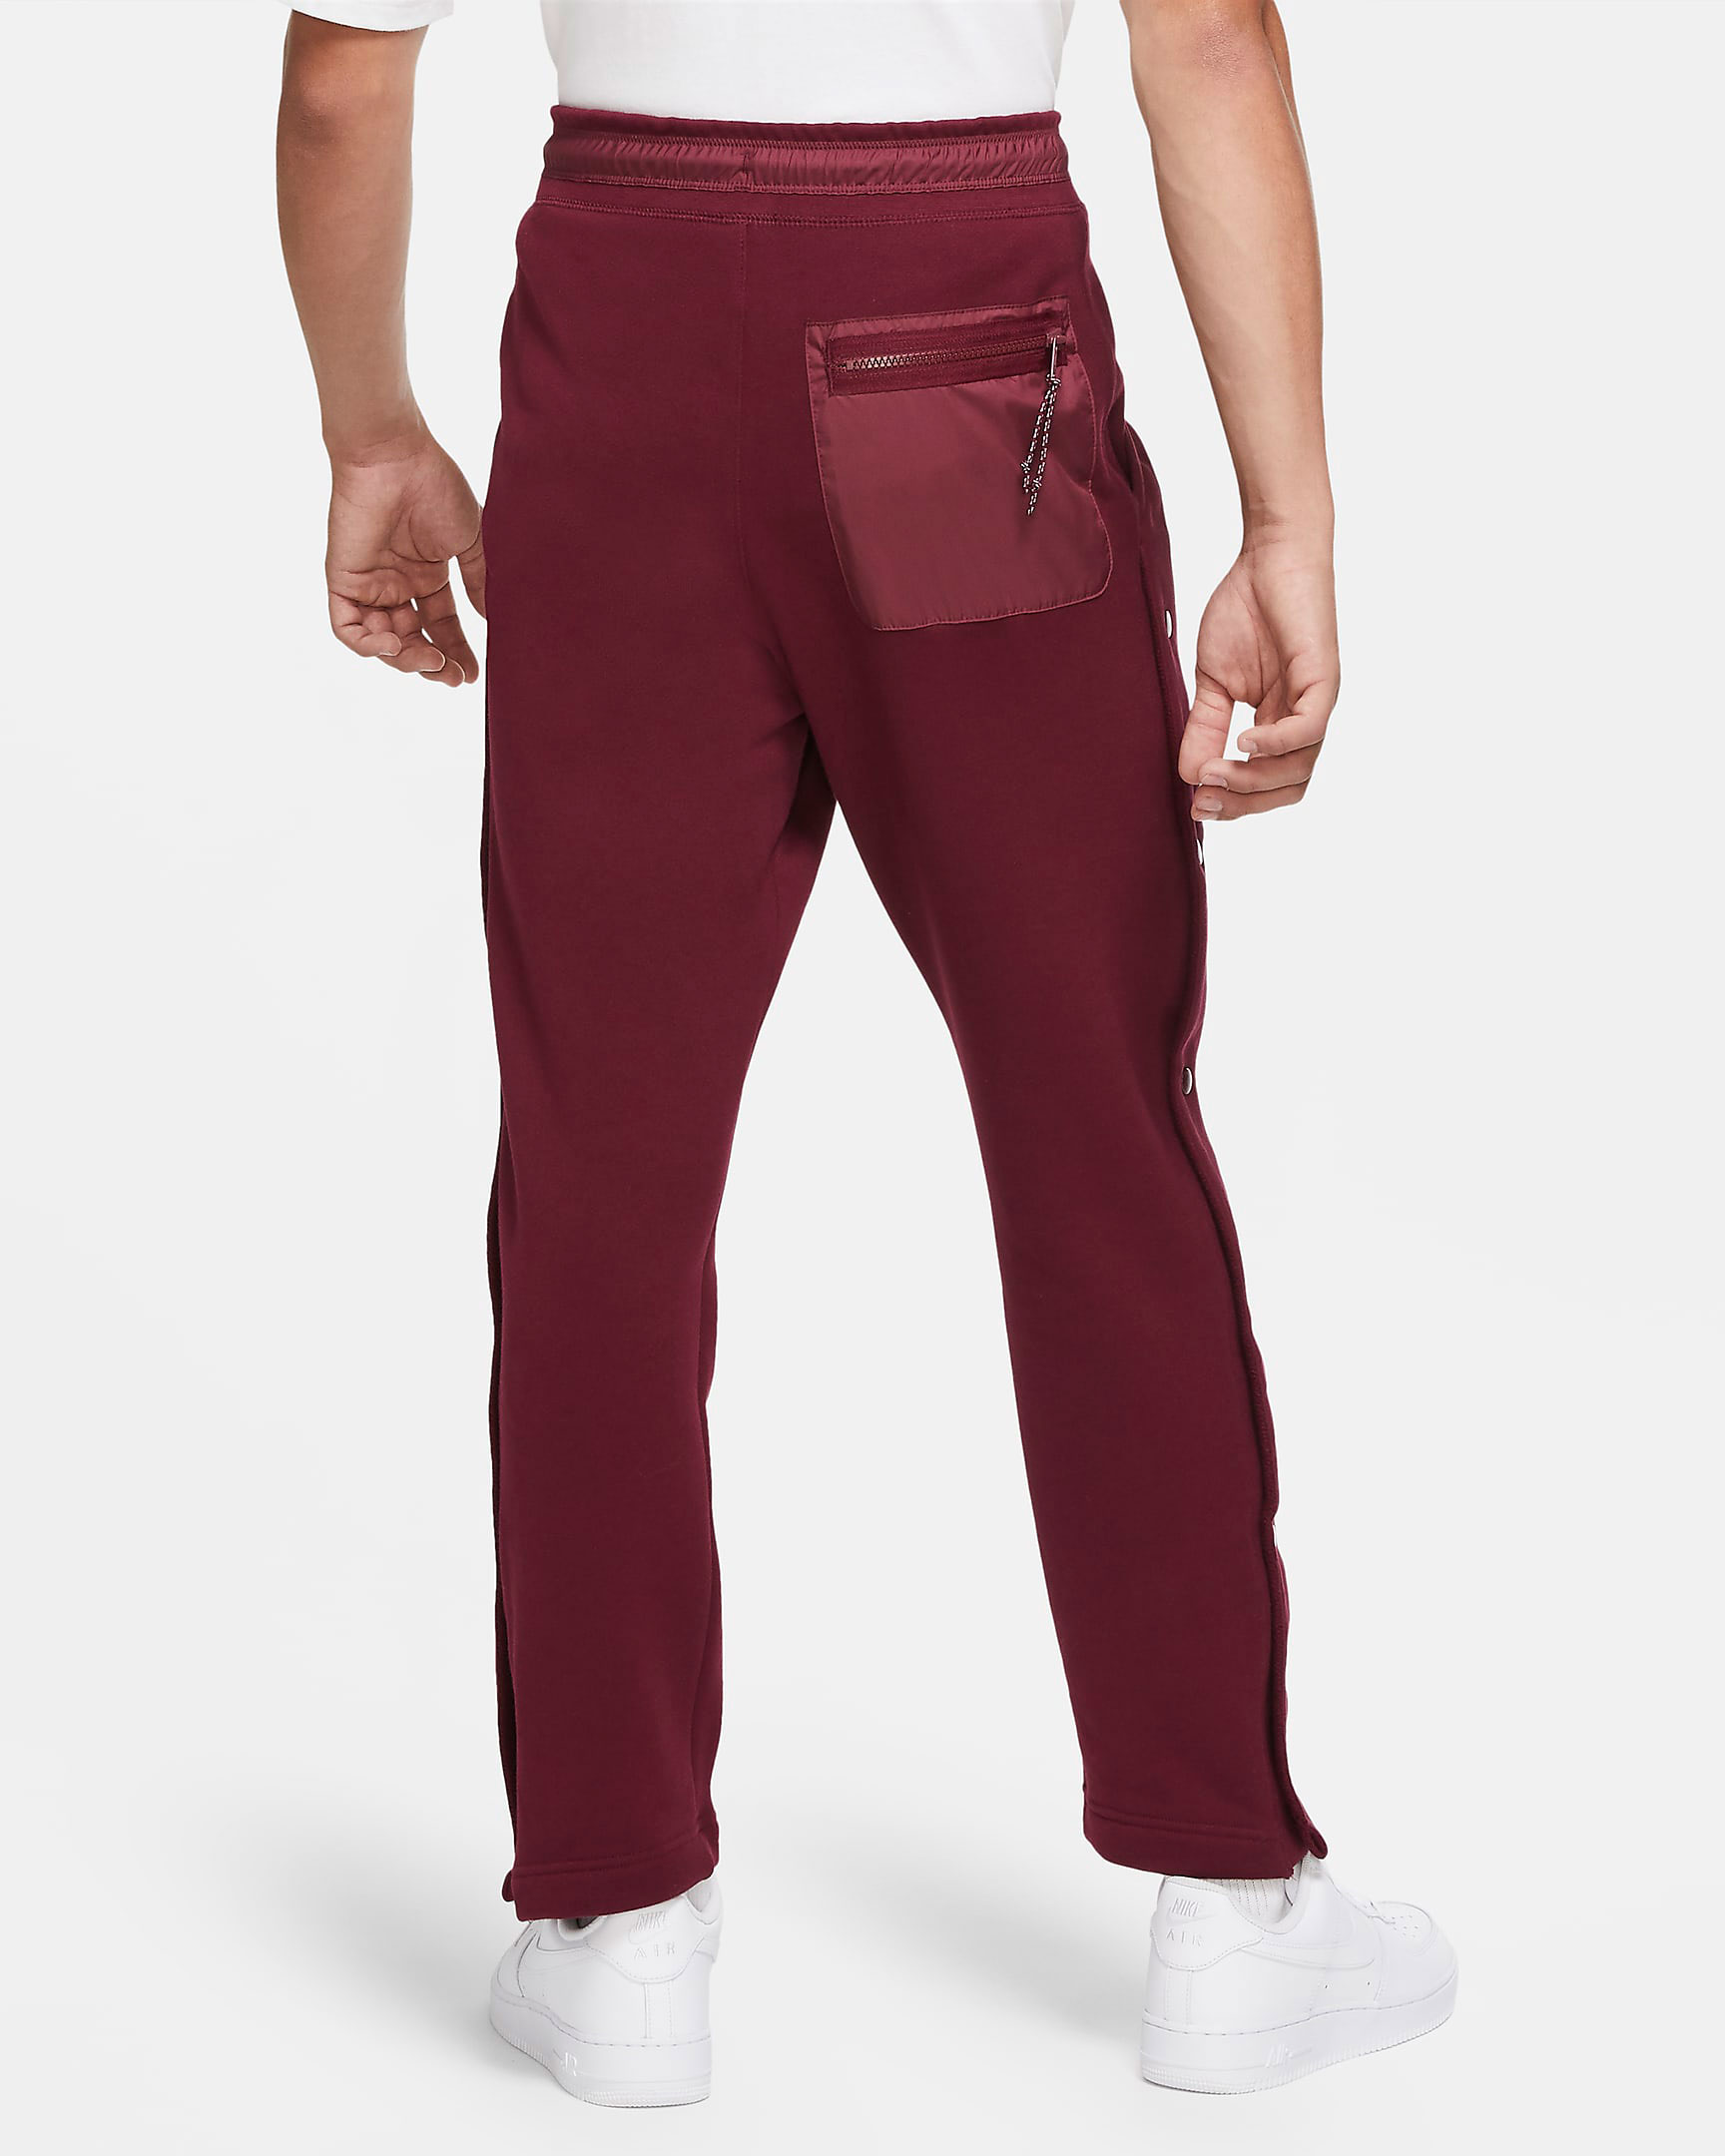 nike-sportswear-pants-beetroot-bordeaux-2